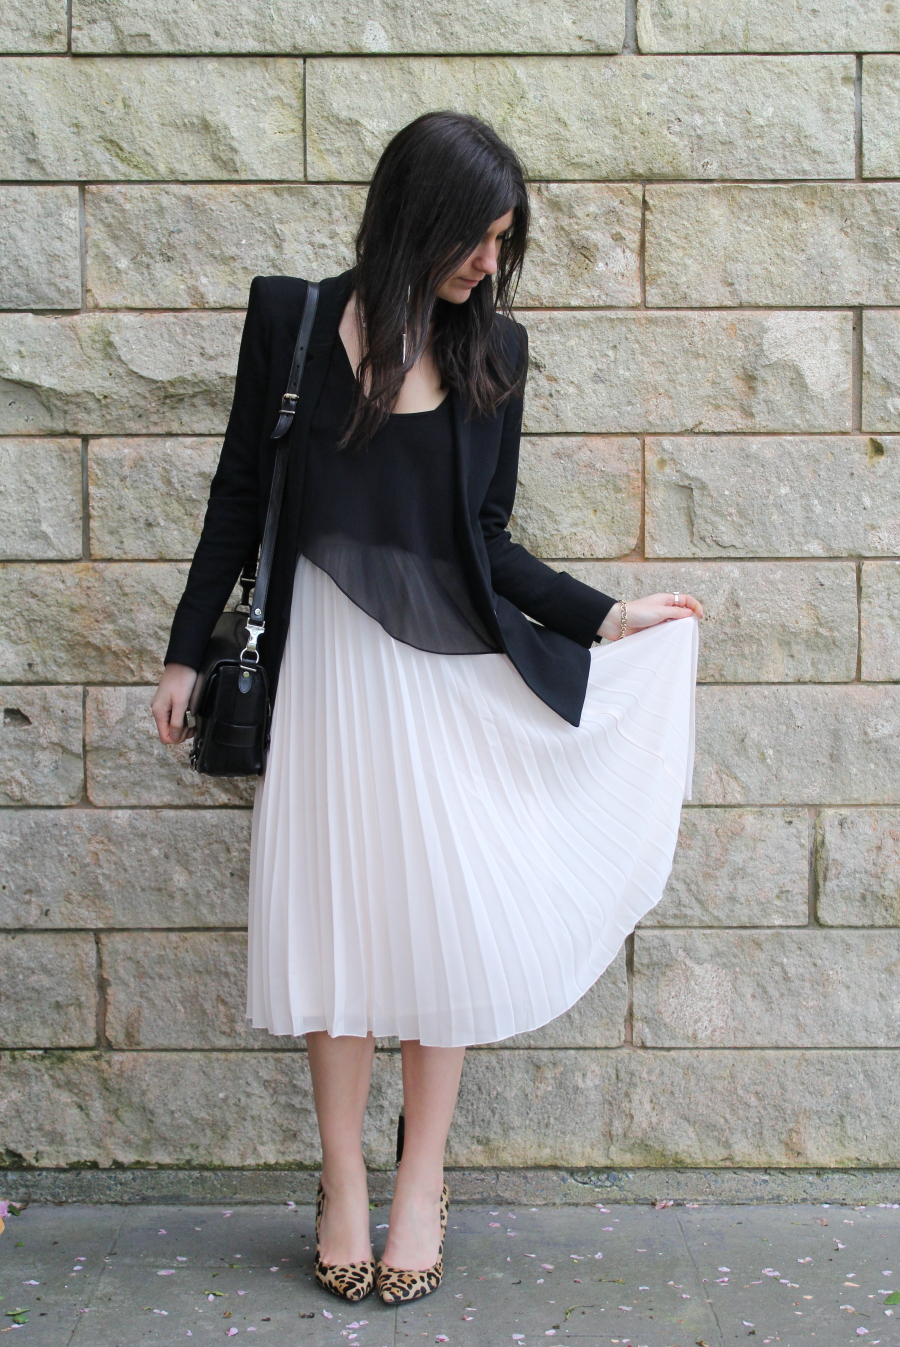 How to wear a pleated mini skirt in winter